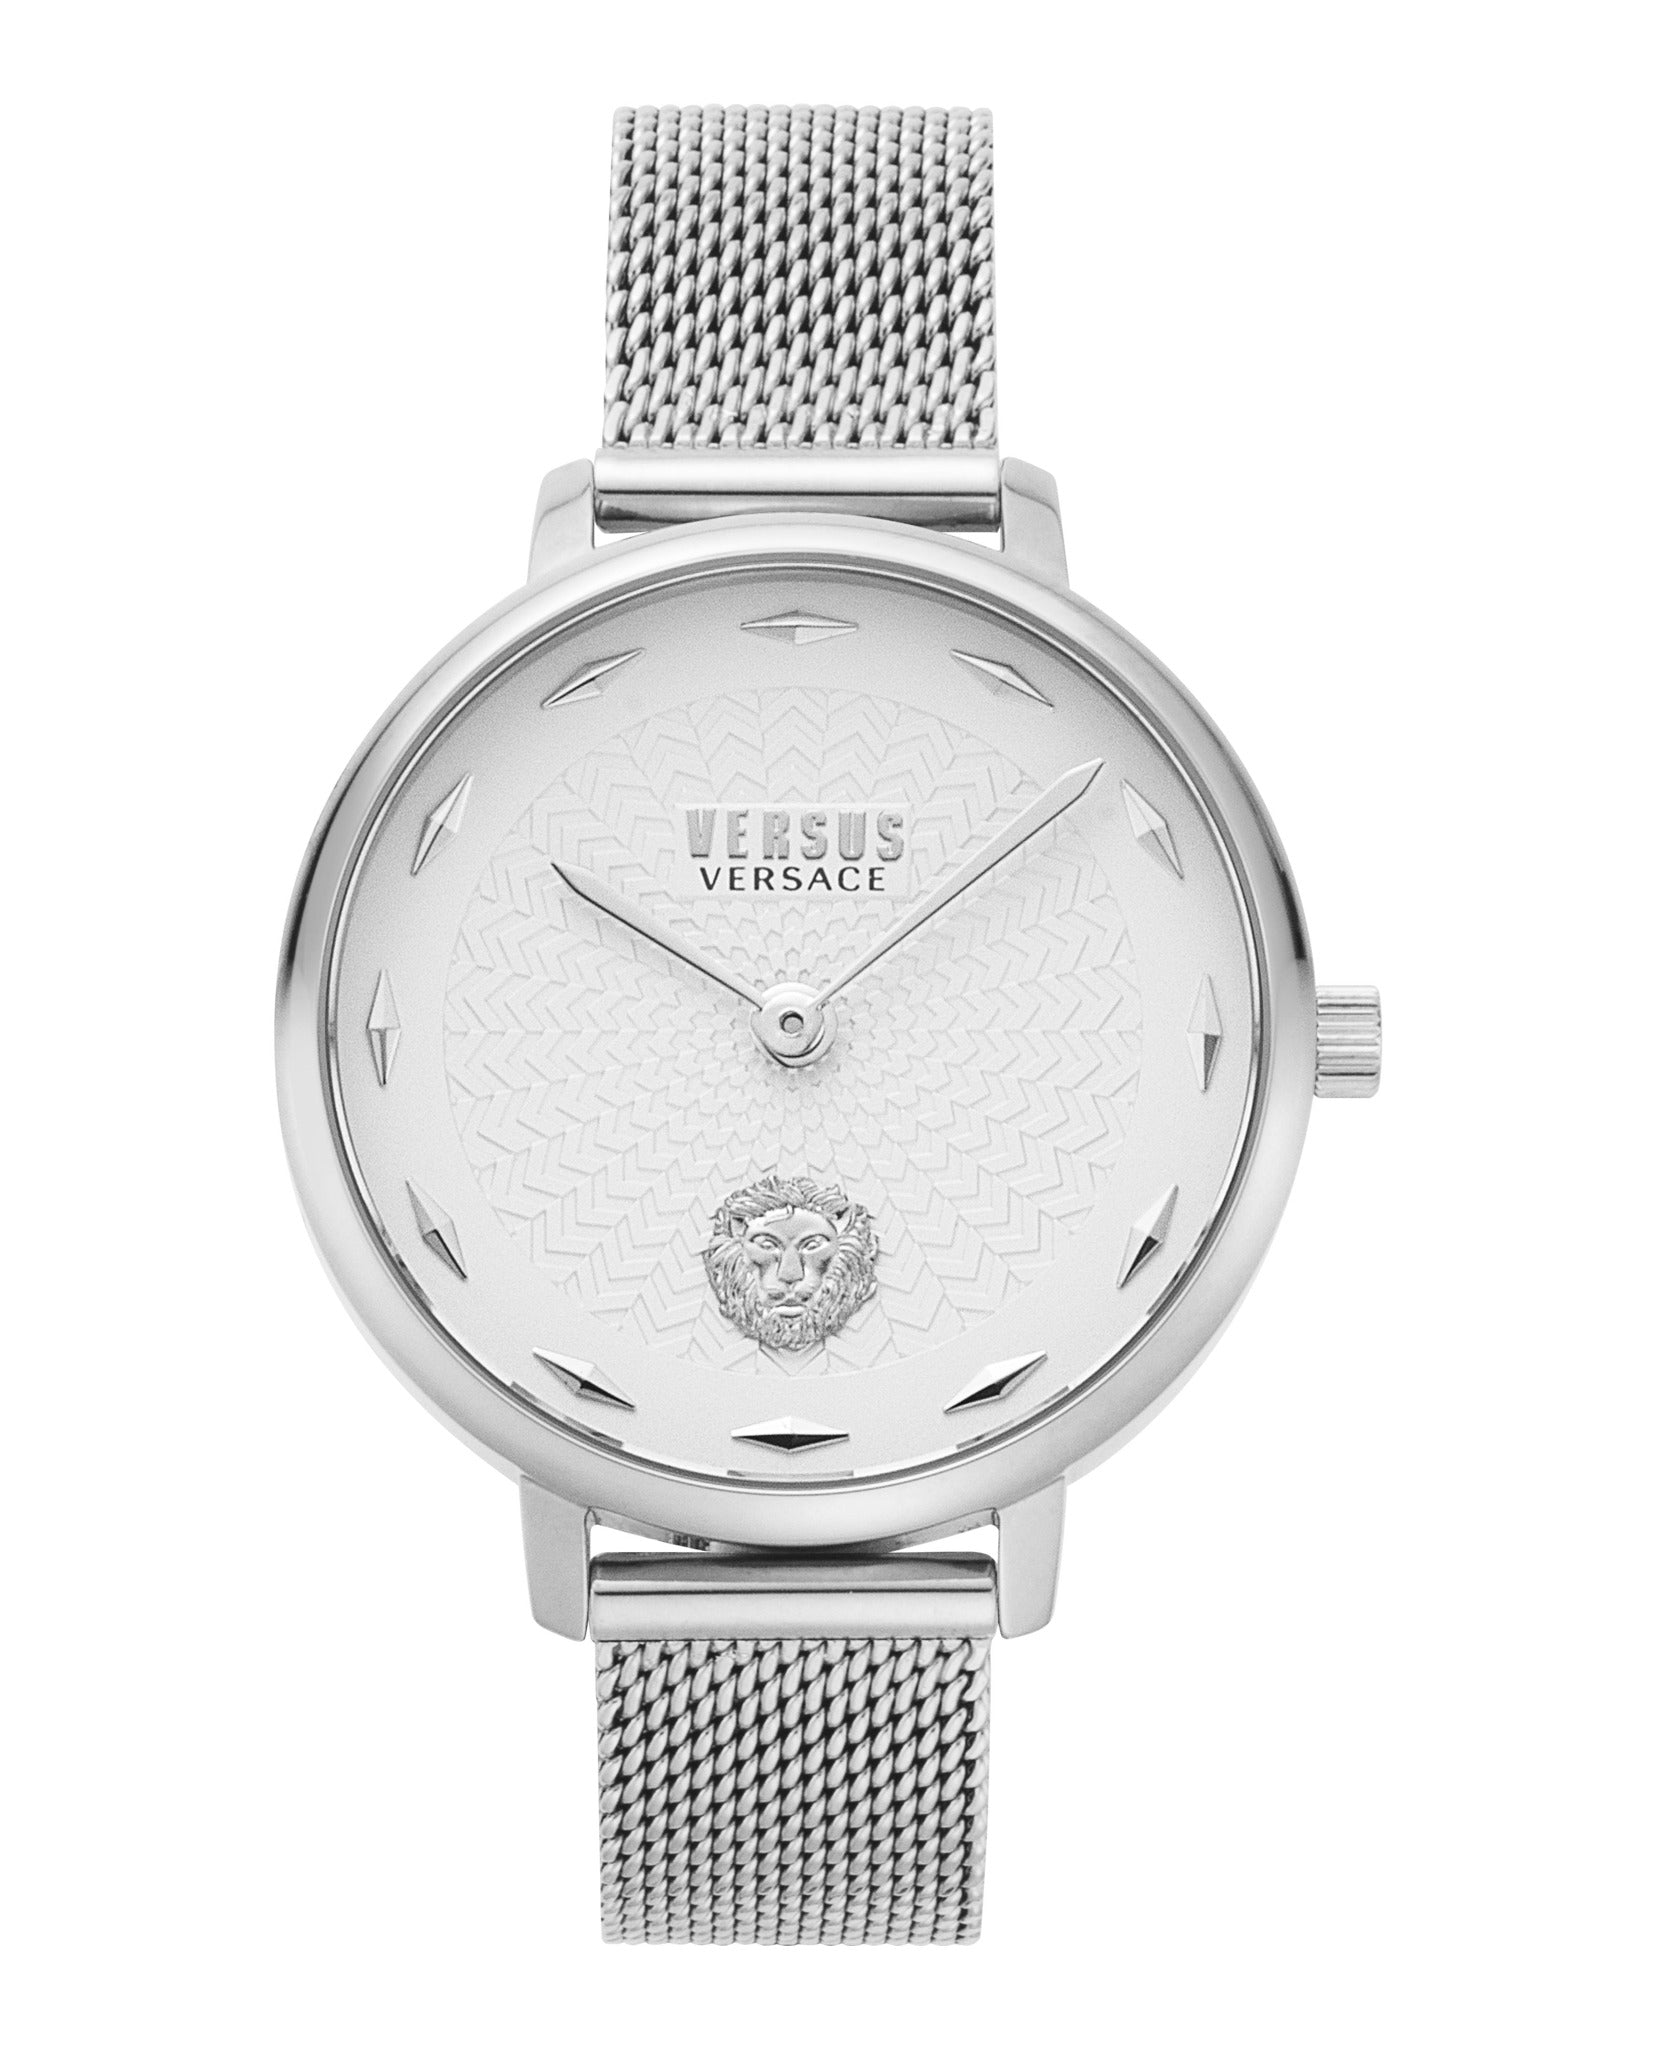 Versus Versace La-Villette Watch